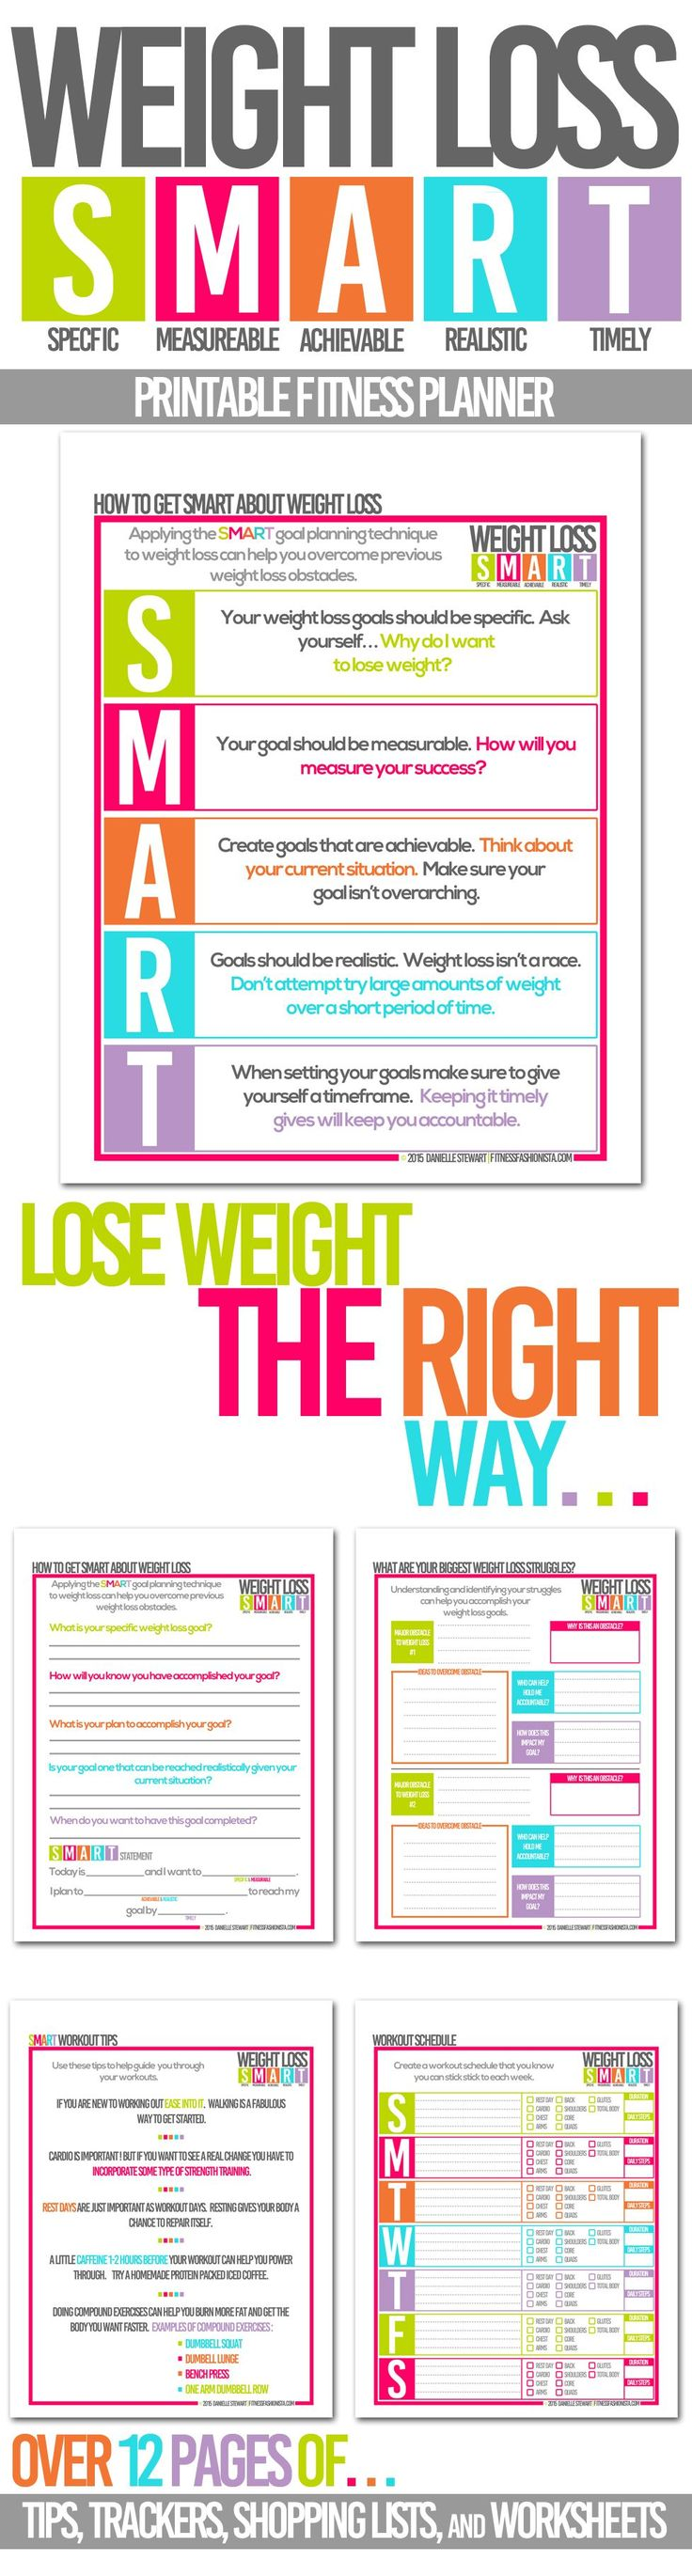 Pinnable-Smart-Weight-Loss-Image